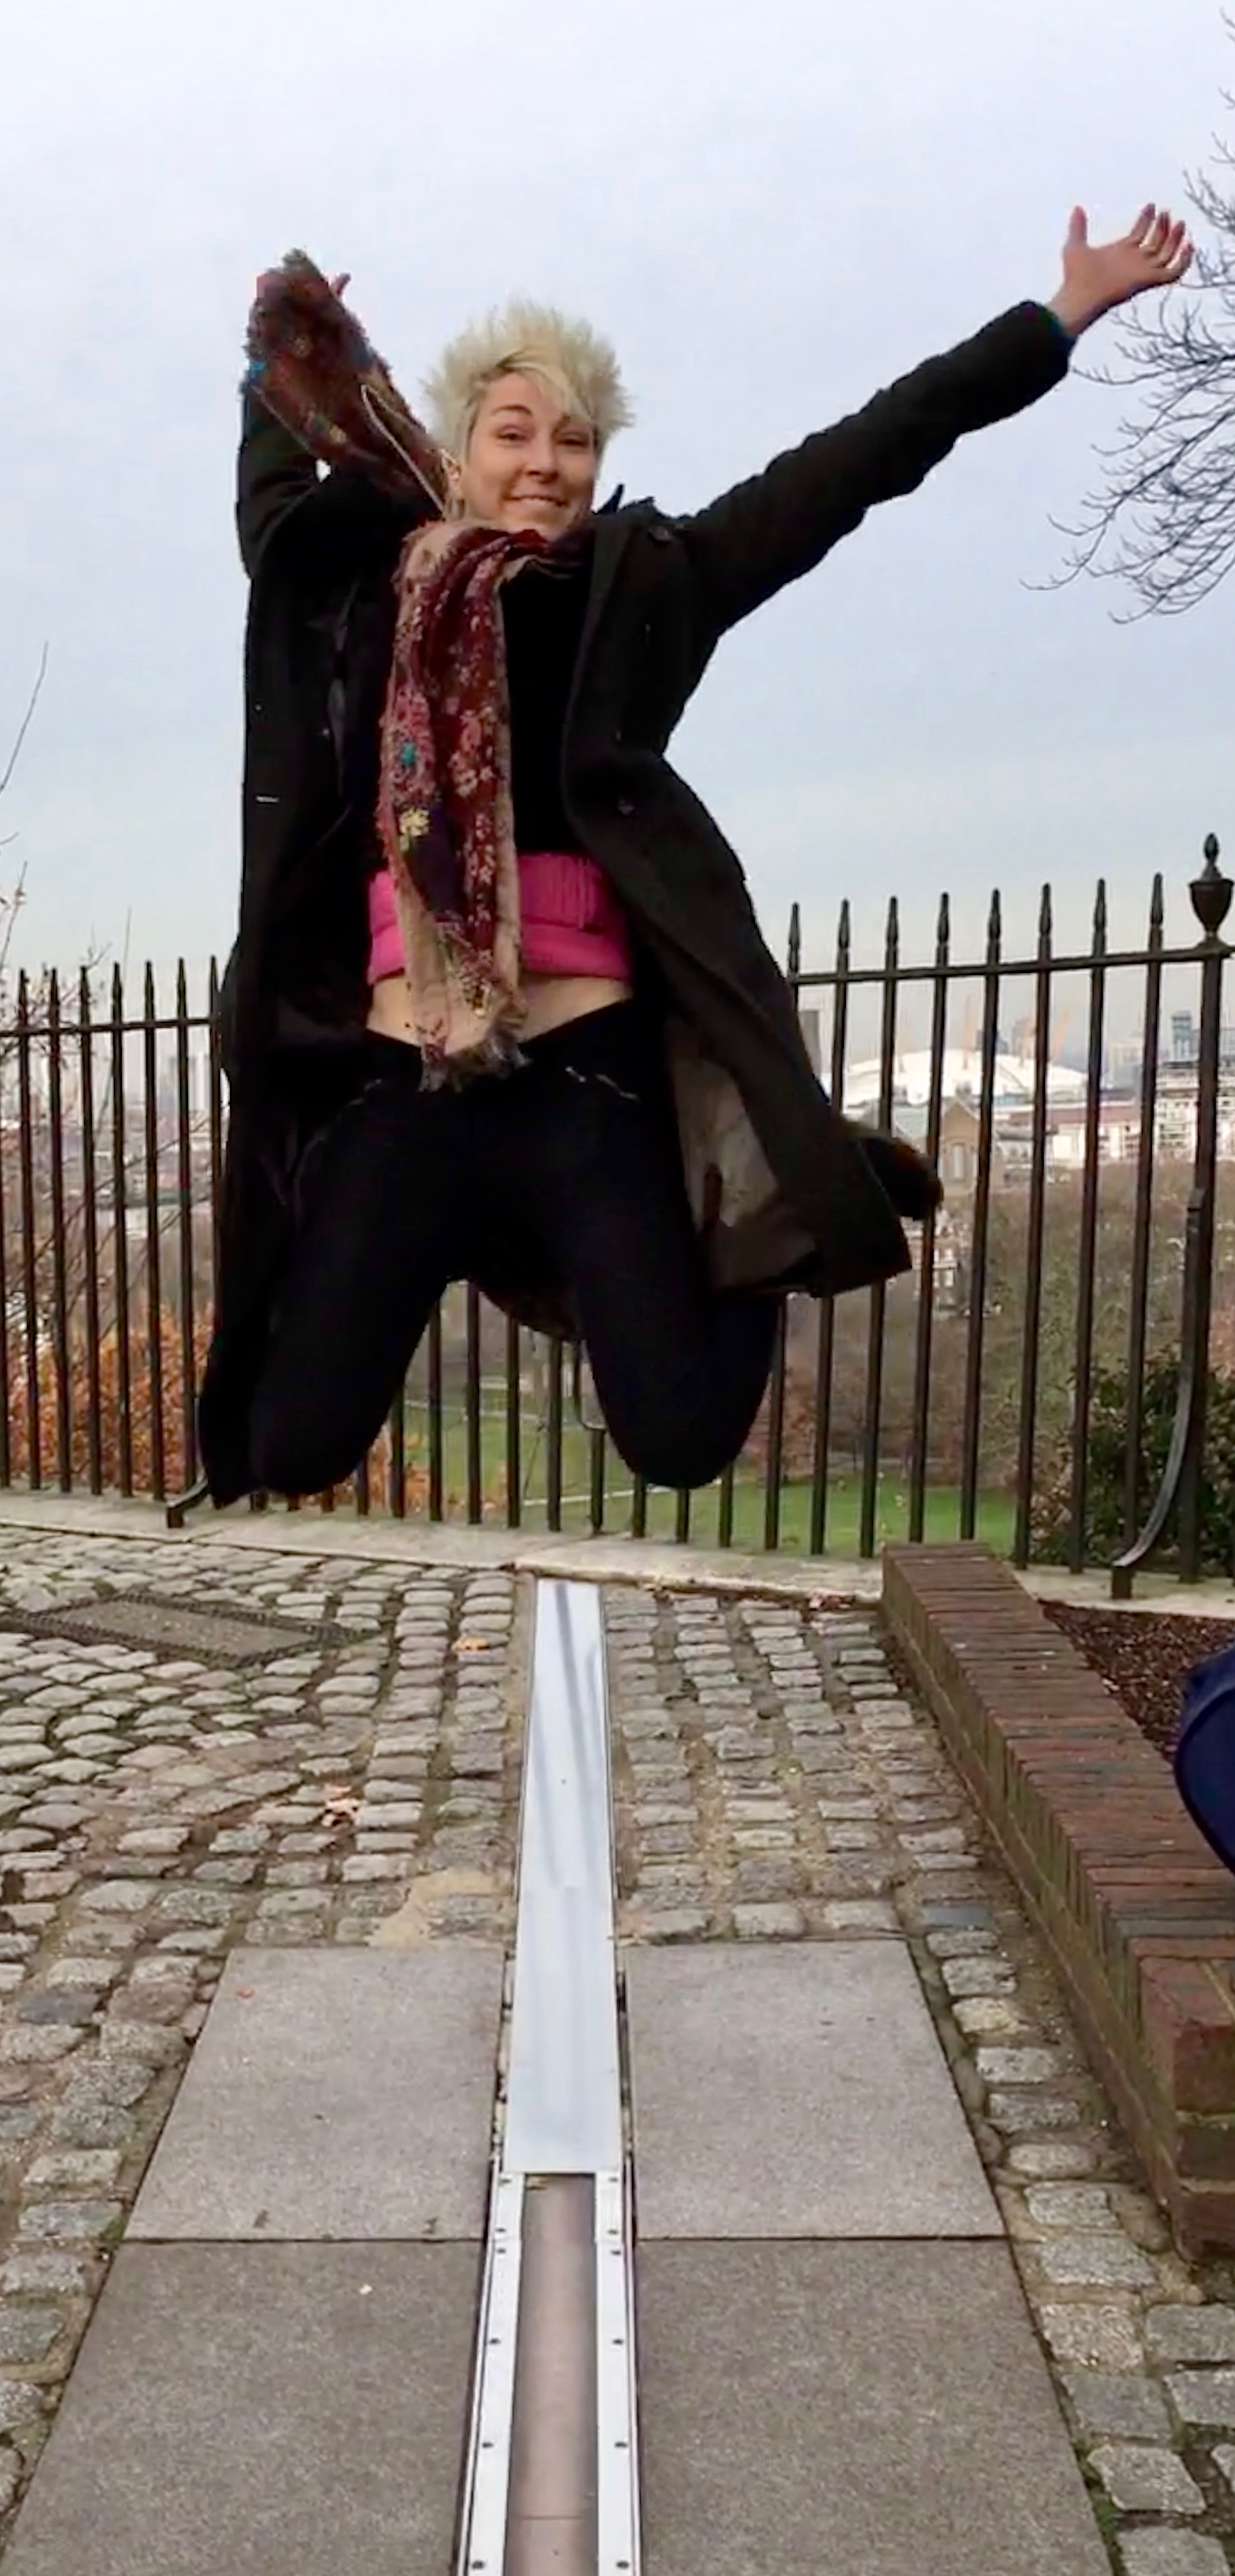 Iszi Jumps over the prime meridian